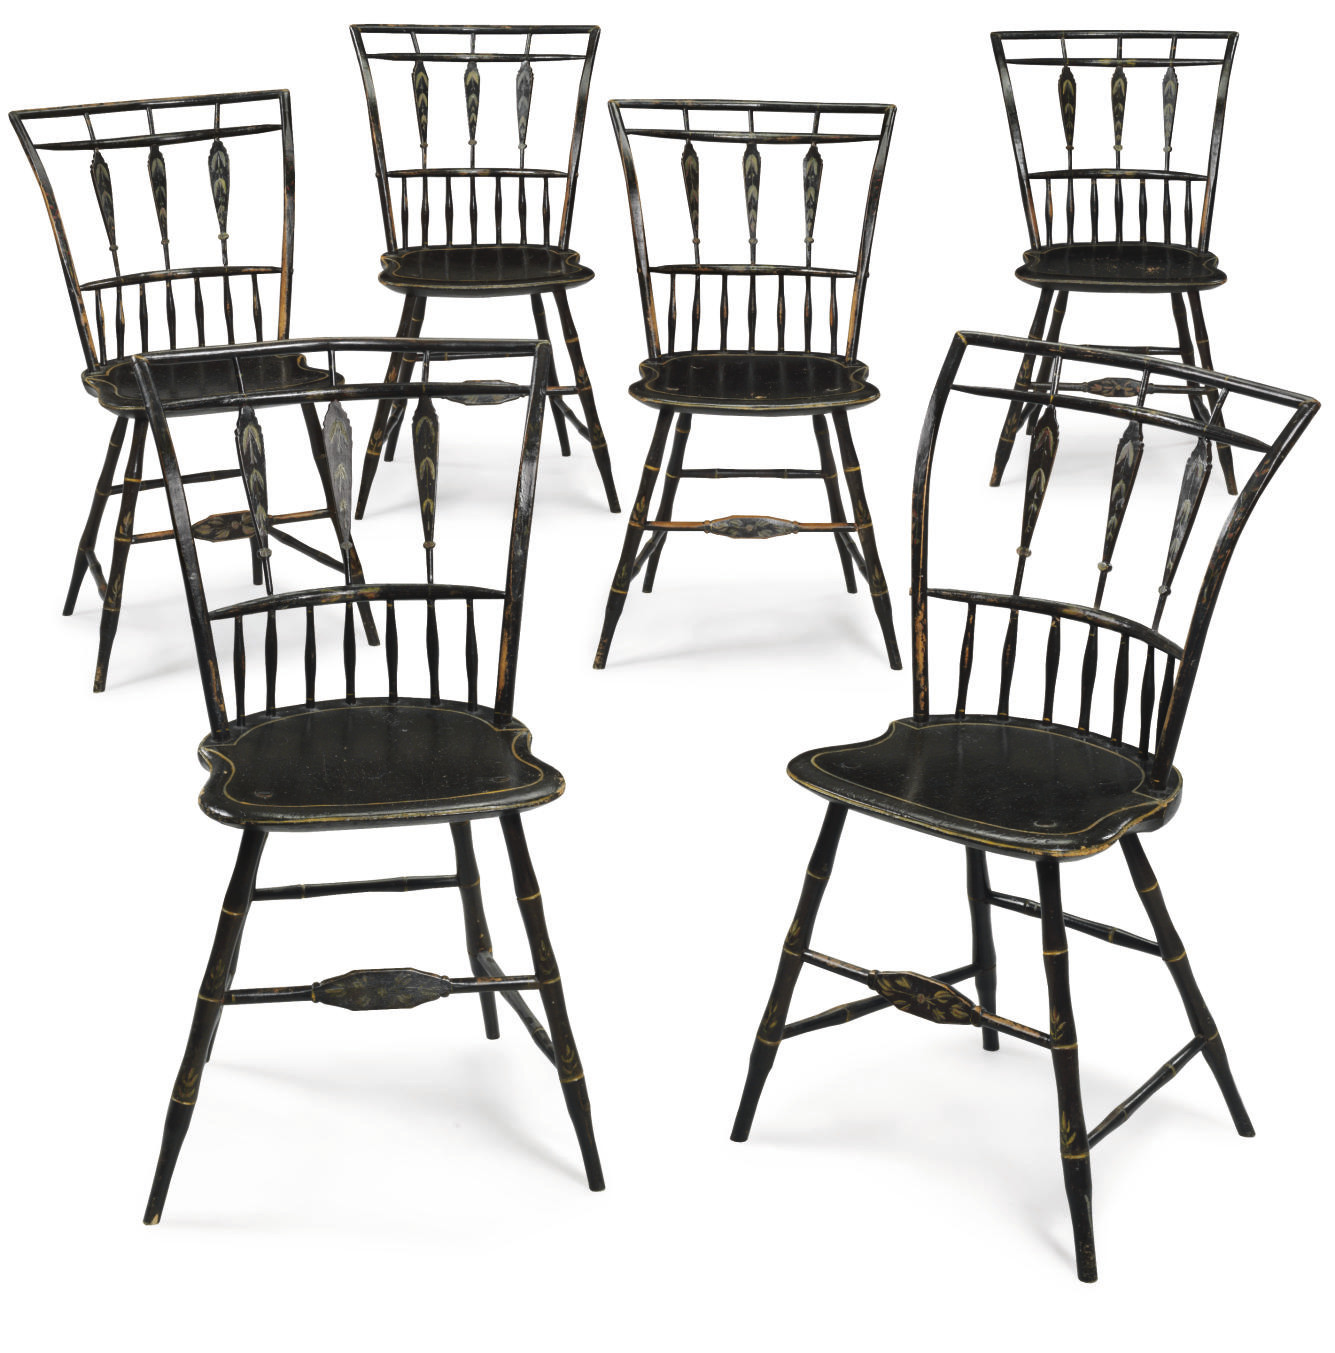 A Set of Six Black-Painted Win